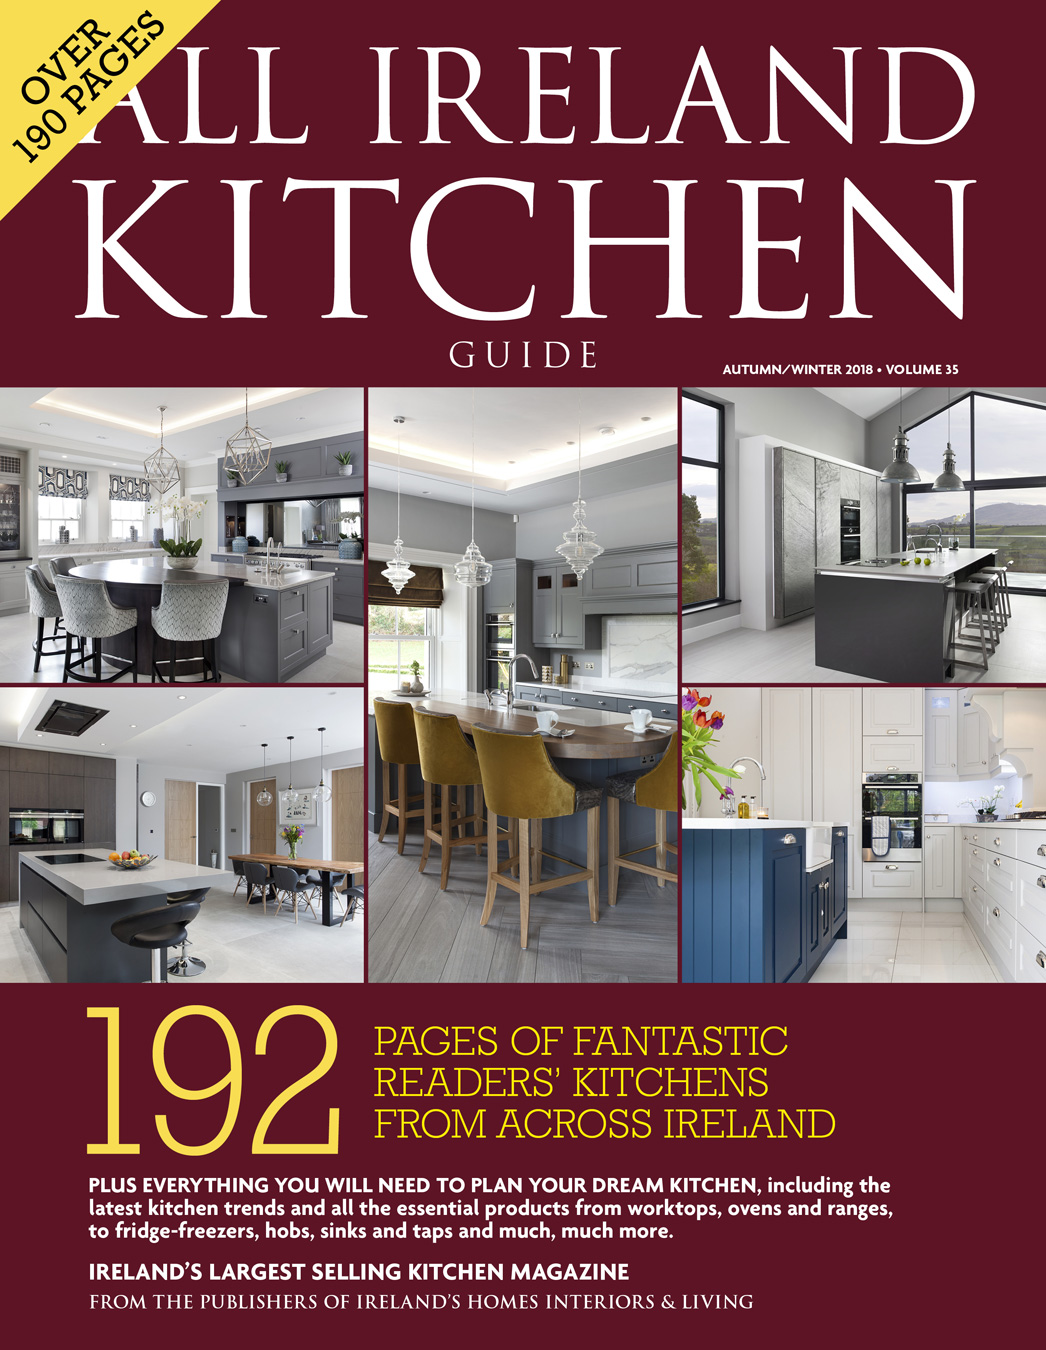 All ireland kitchen guide volume 35 everything you need to plan your dream kitchen